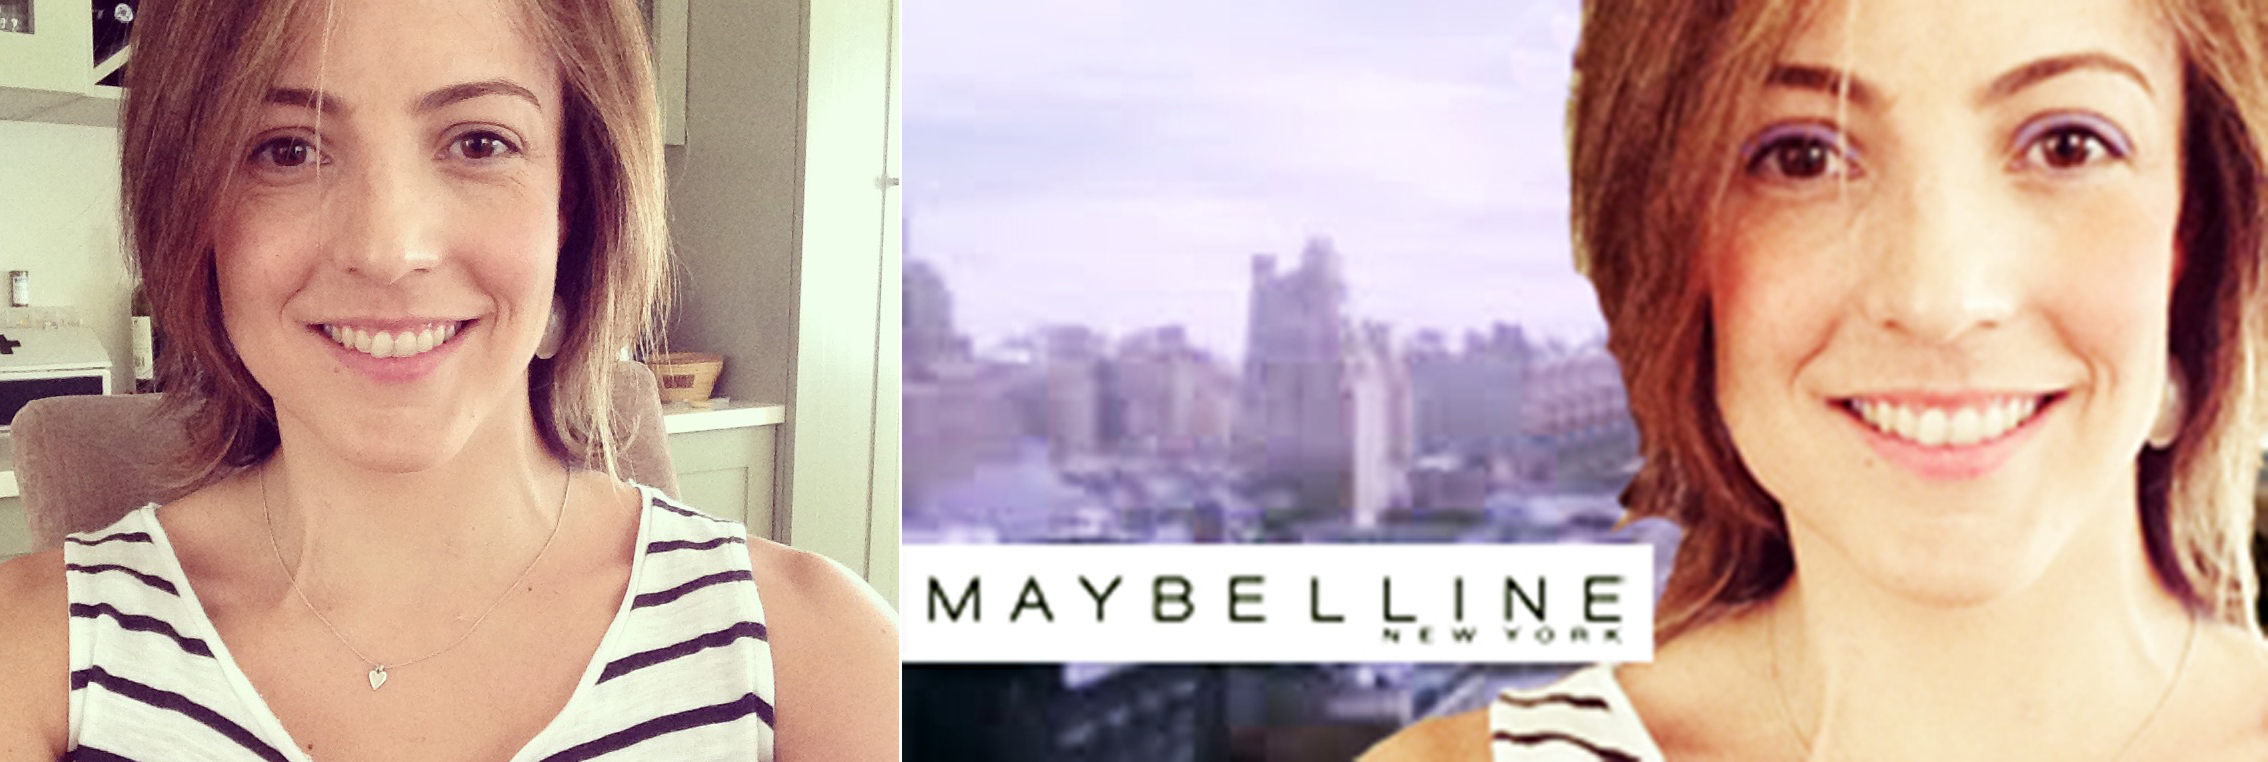 Lucy why didn't you tell me you work for Maybelline?